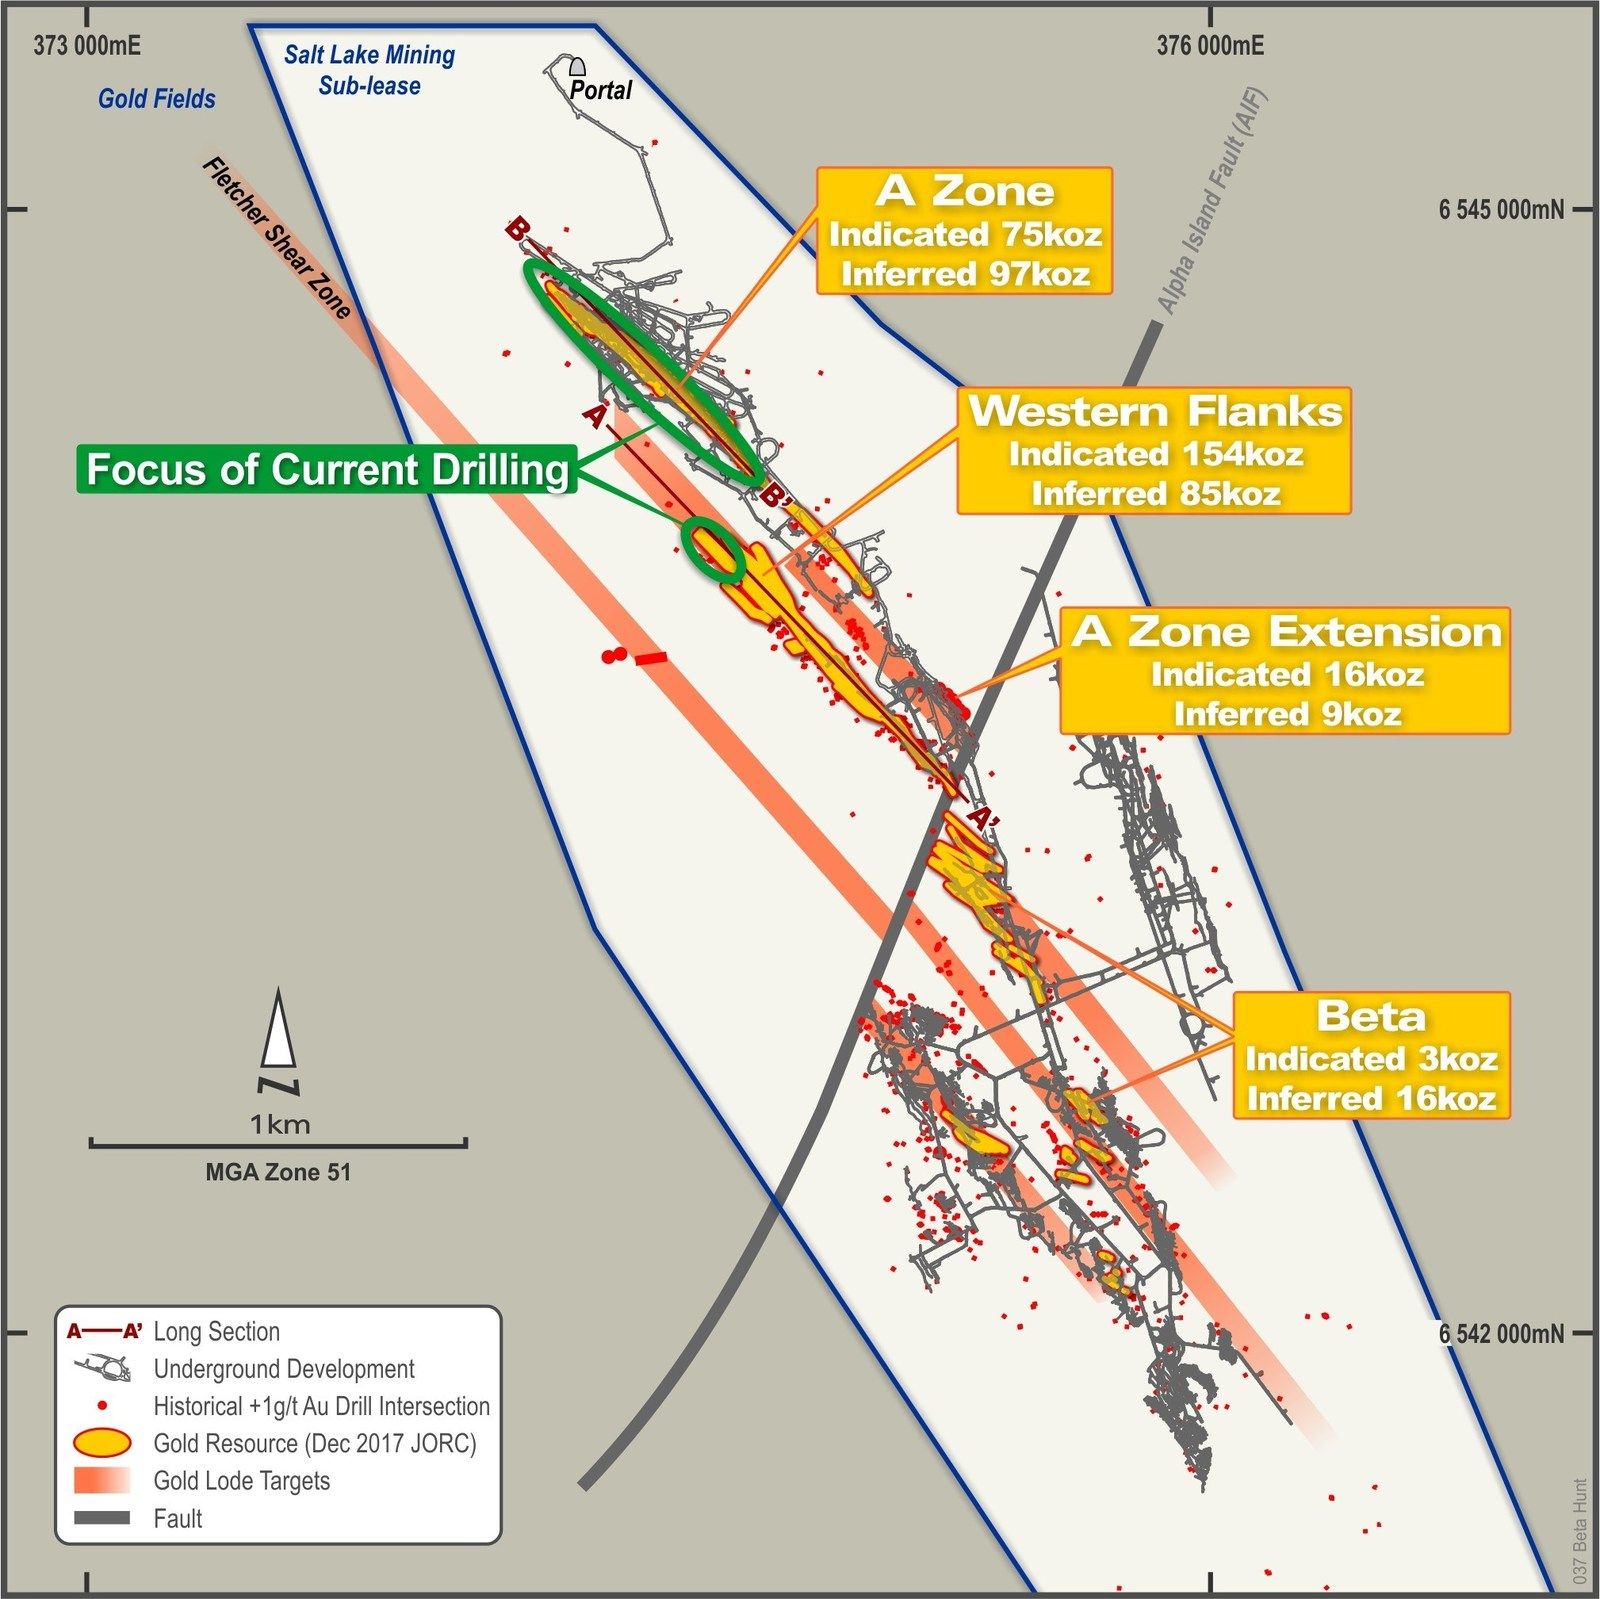 Figure 1 – Plan View of Beta Hunt Sub-lease showing focus of recent drill campaign and location of A Zone and Western Flanks long sections.